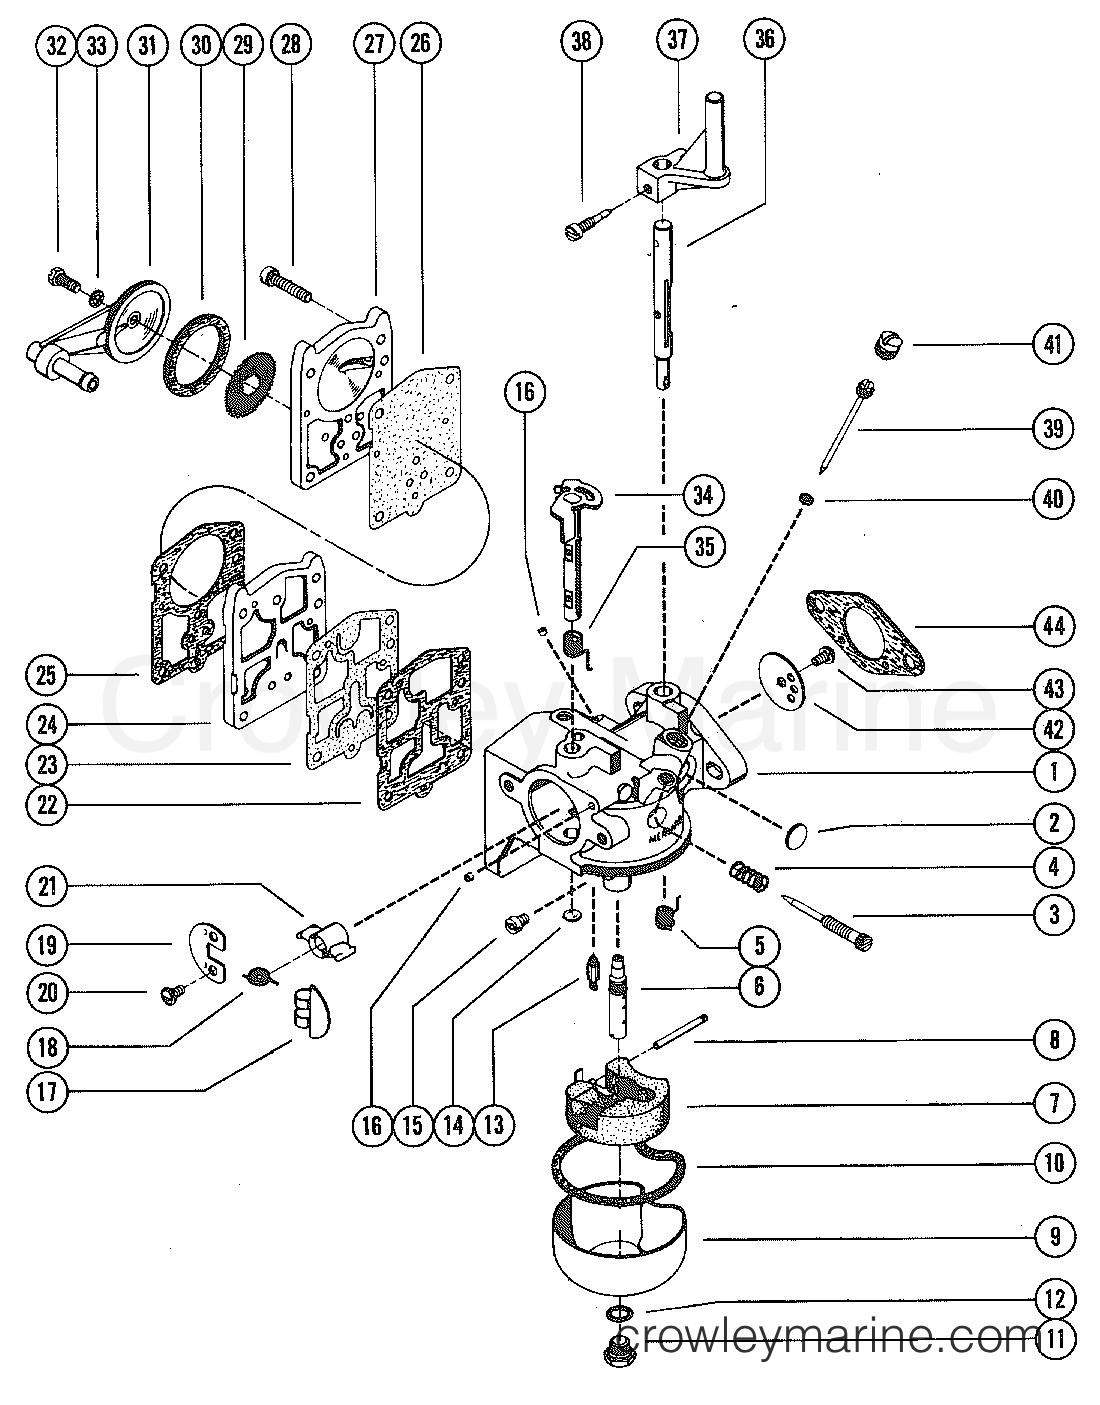 hight resolution of diagram moreover mercury outboard motor parts diagram on 7 5 mercury diagram further mercury 115 hp 4 stroke parts diagram moreover mercury